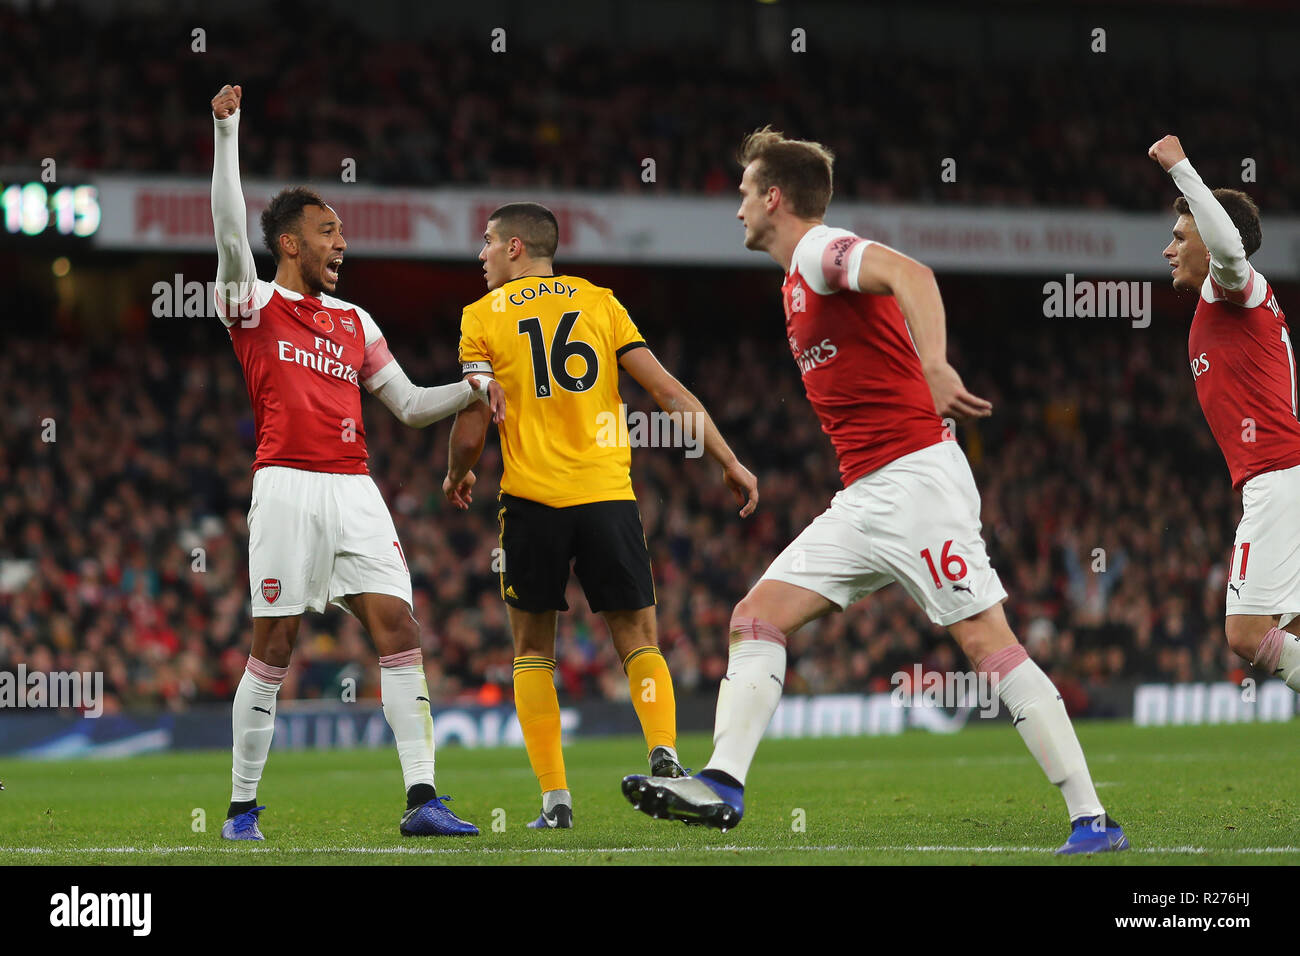 Pierre-Emerick Aubameyang of Arsenal celebrates after scoring the  equalising goal, making it 1-1 - Arsenal v Wolverhampton Wanderers, Premier  League Stock Photo - Alamy